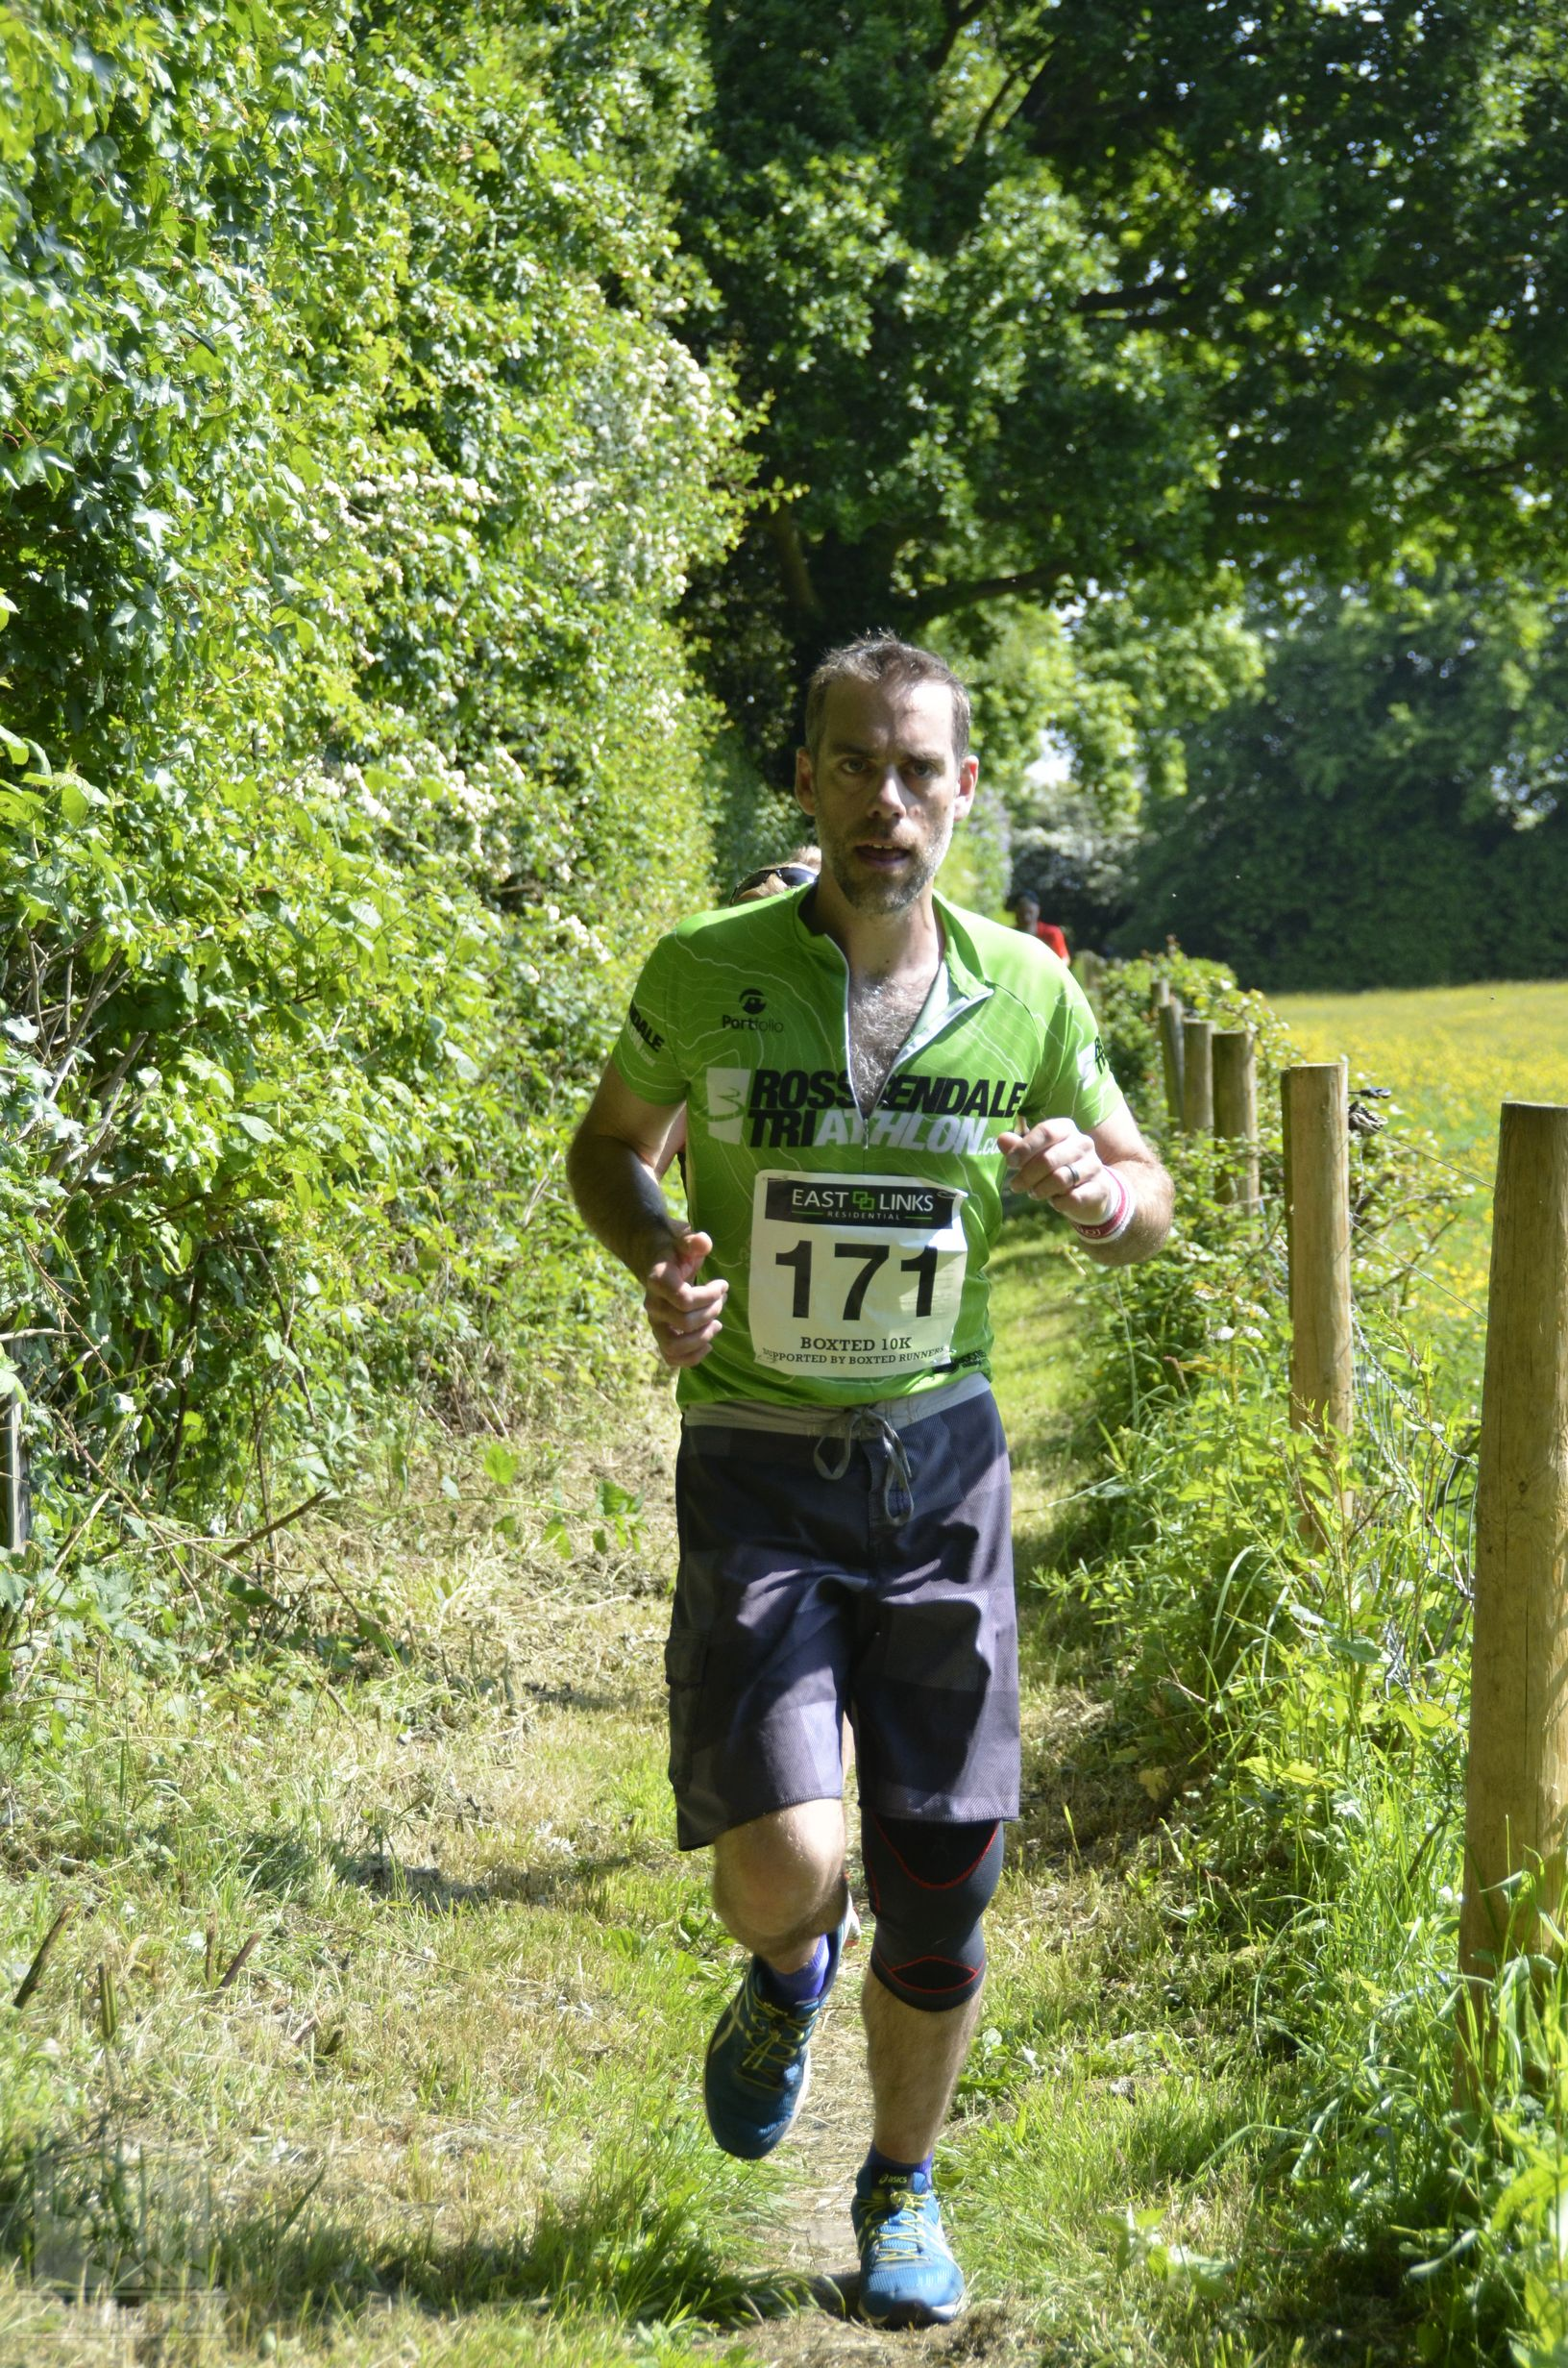 Boxted10k-00136